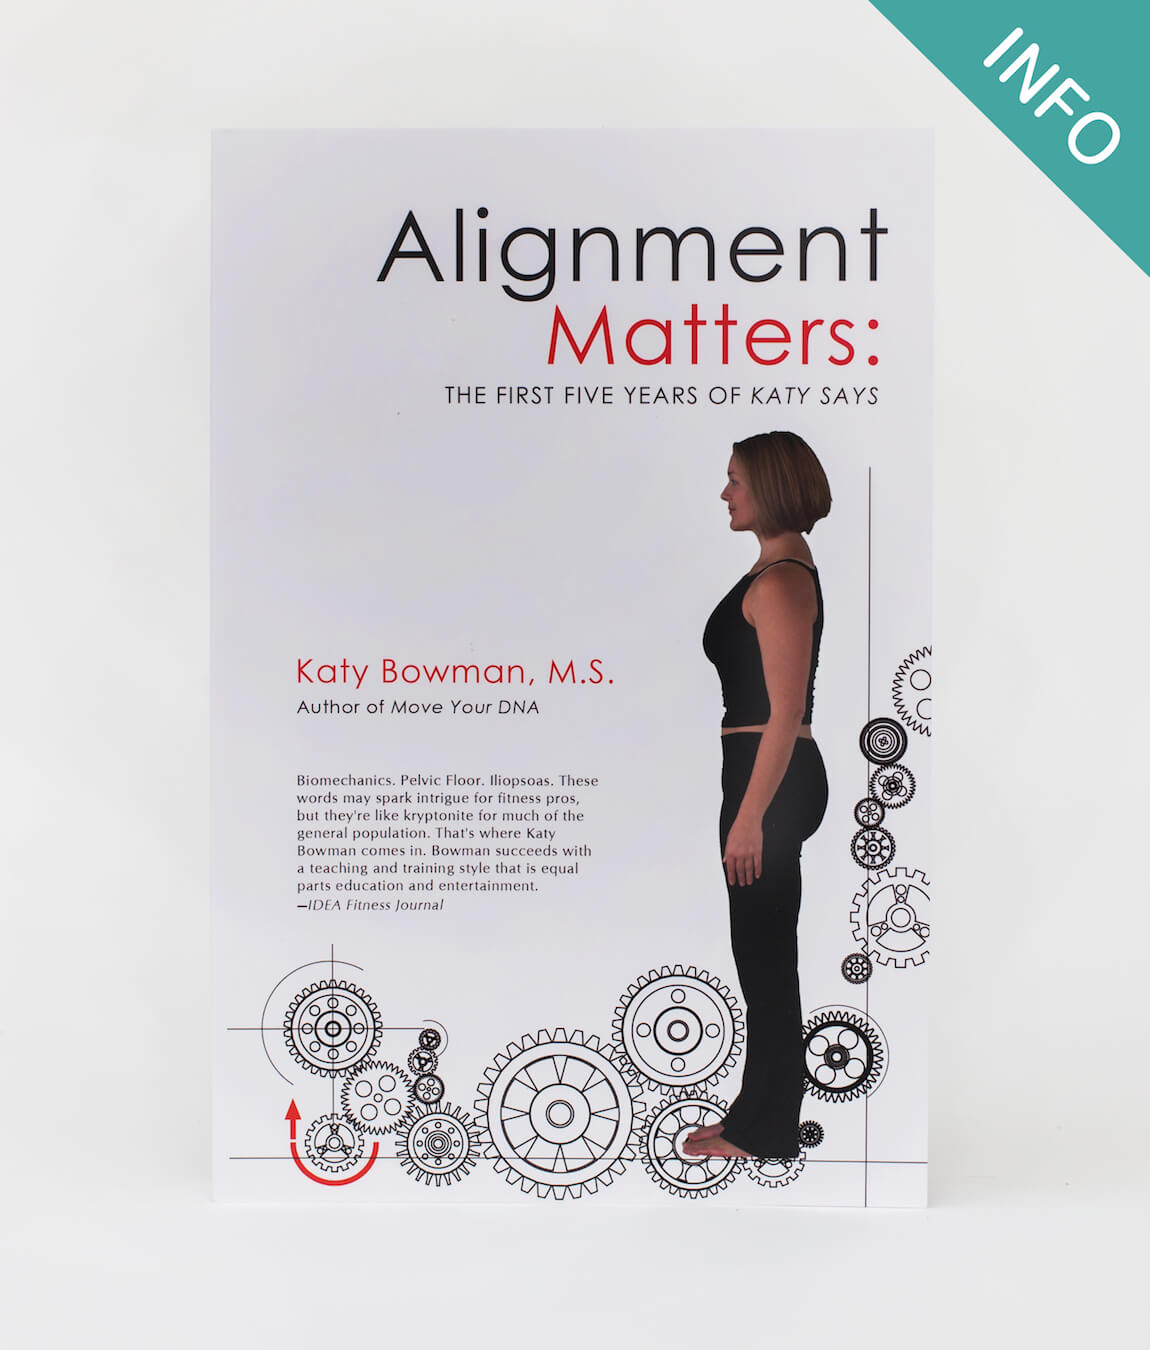 Alignment Matters Katy Bowman